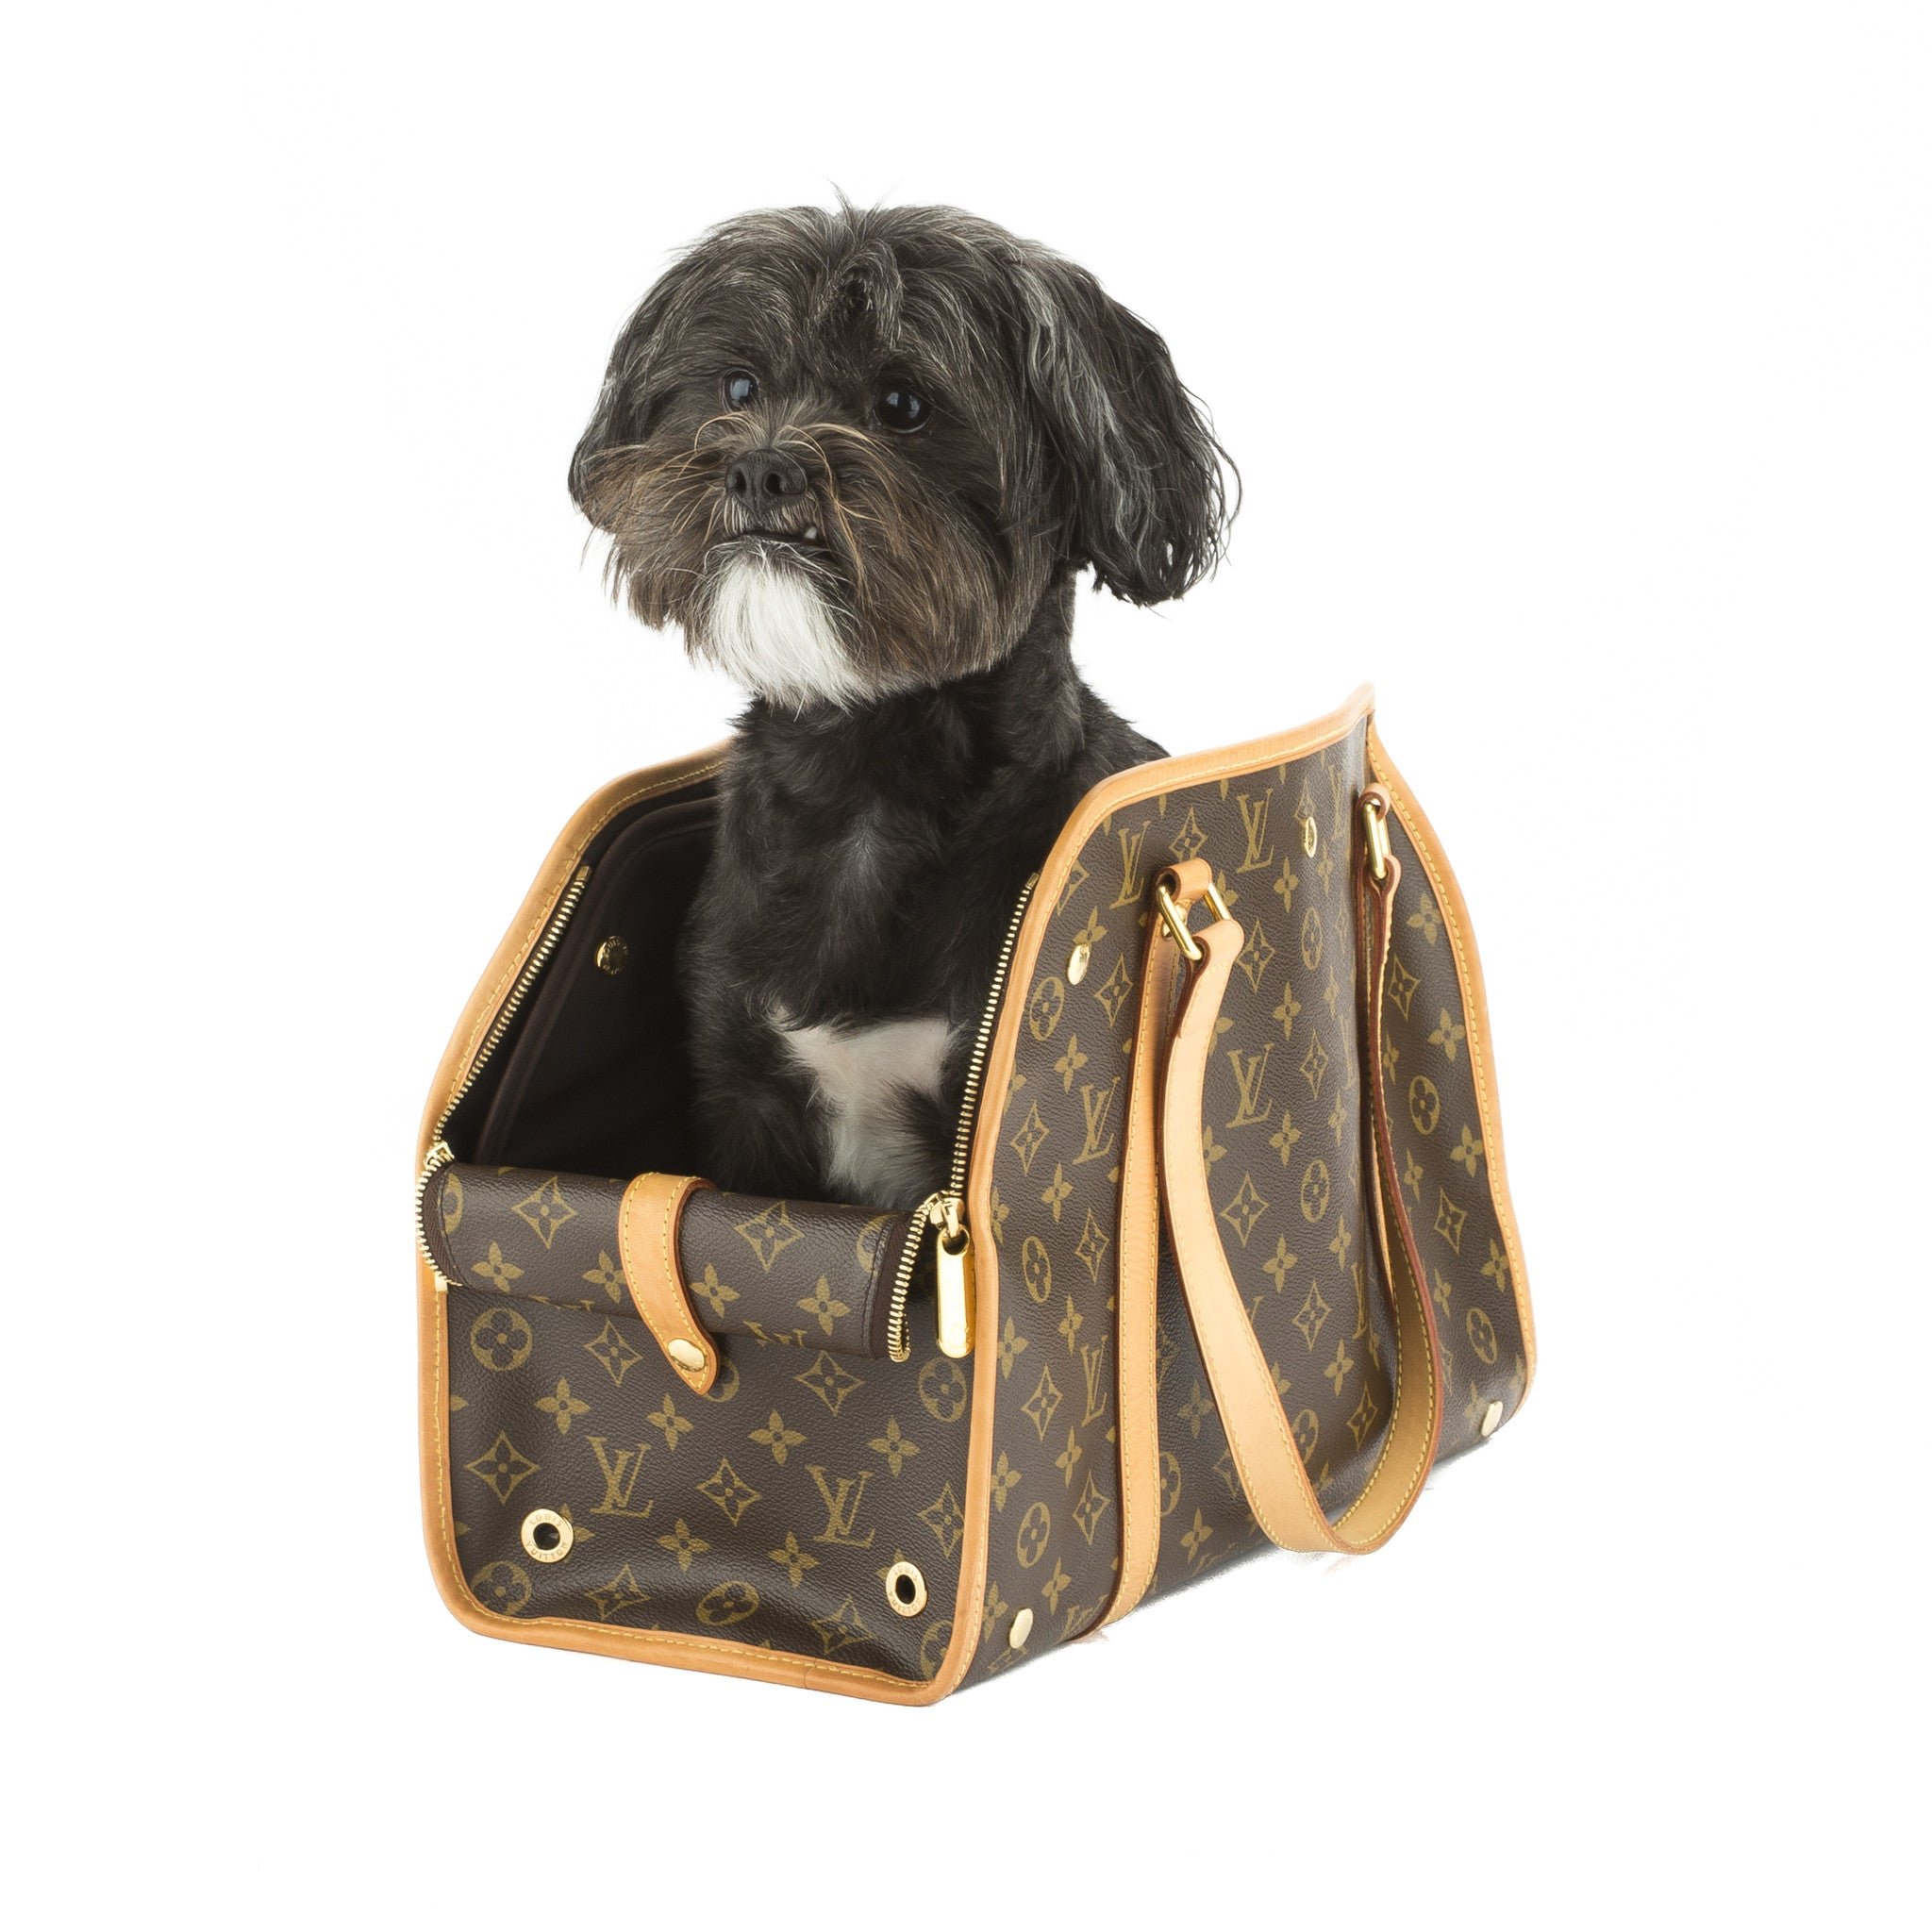 8682a73320b9 Louis Vuitton Monogram Sac Baxter GM Dog Pet Carrier (Pre Owned) - 2563002